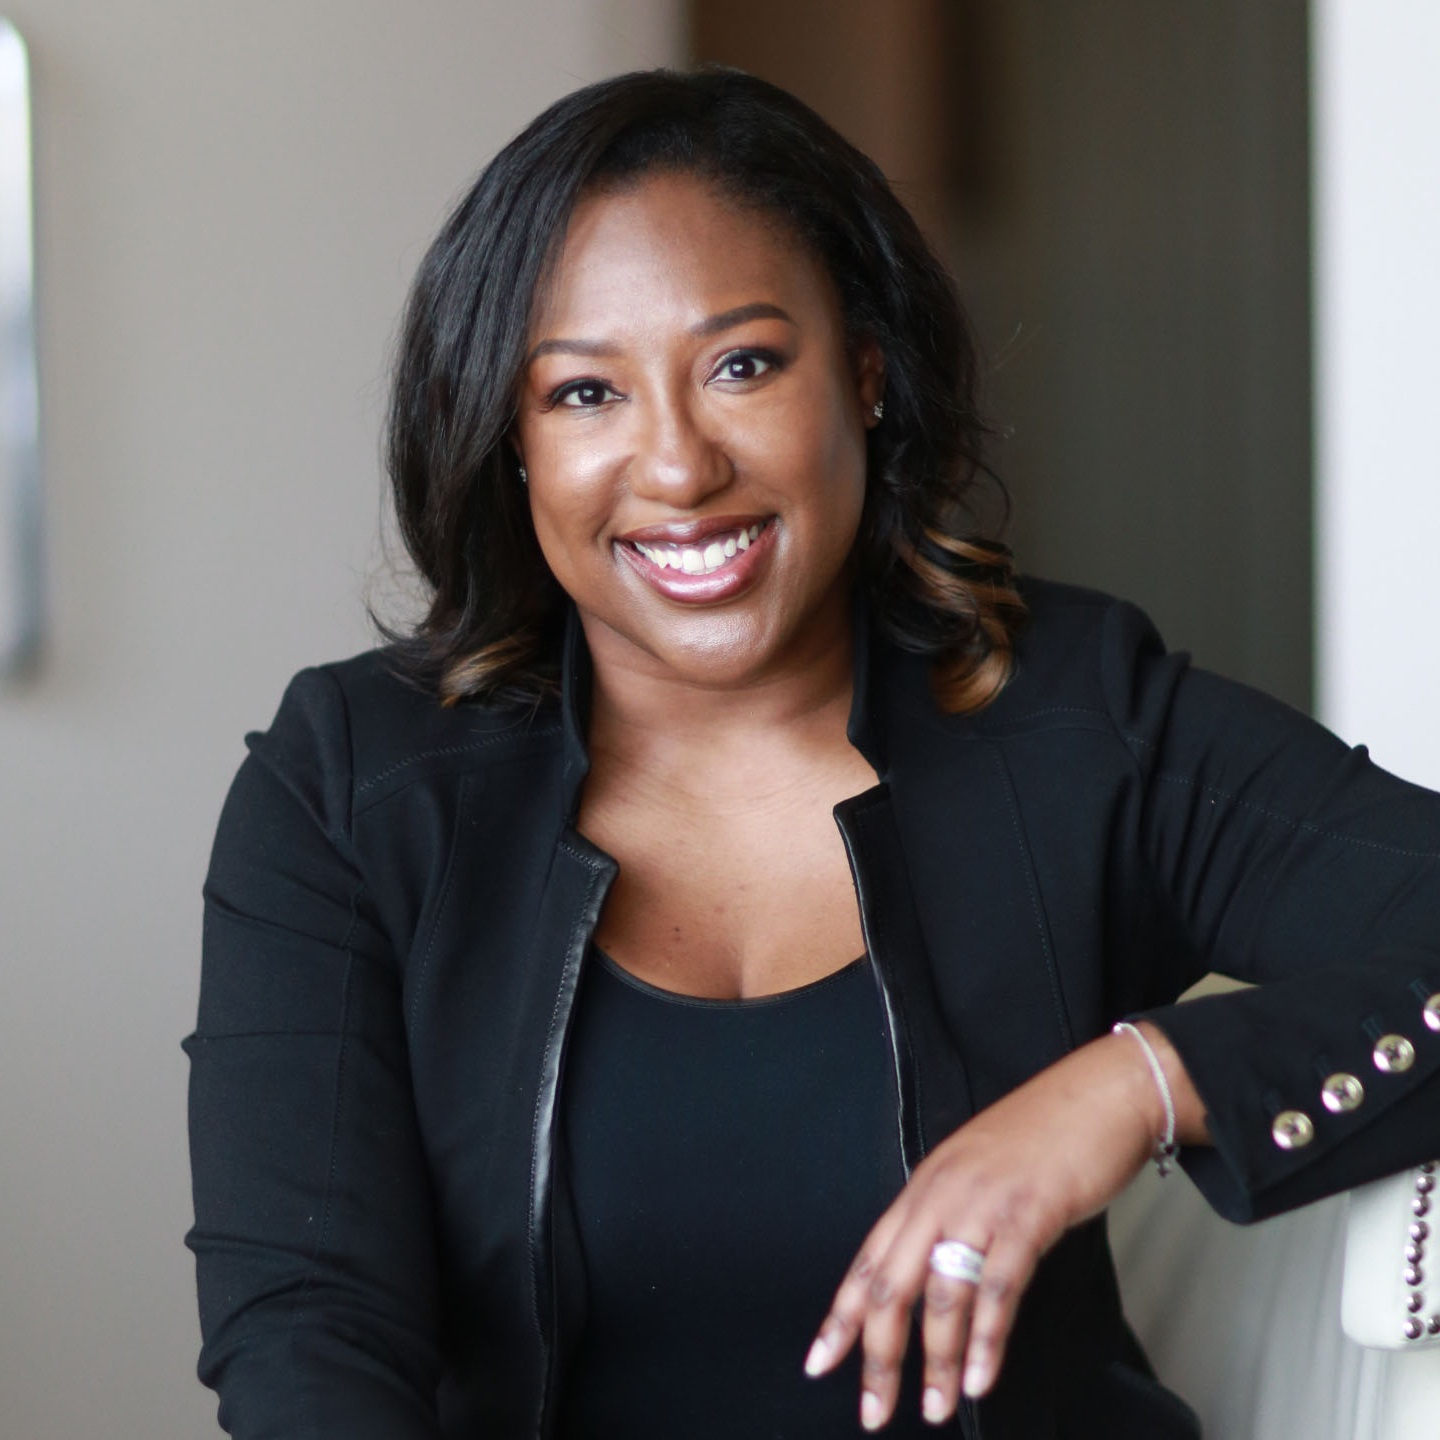 ANDDRIA CLACK-ROGERS VARNADO - Global Head of Strategy, Williams-Sonoma, Inc. and Board Director, Umpqua Holdings Corporation